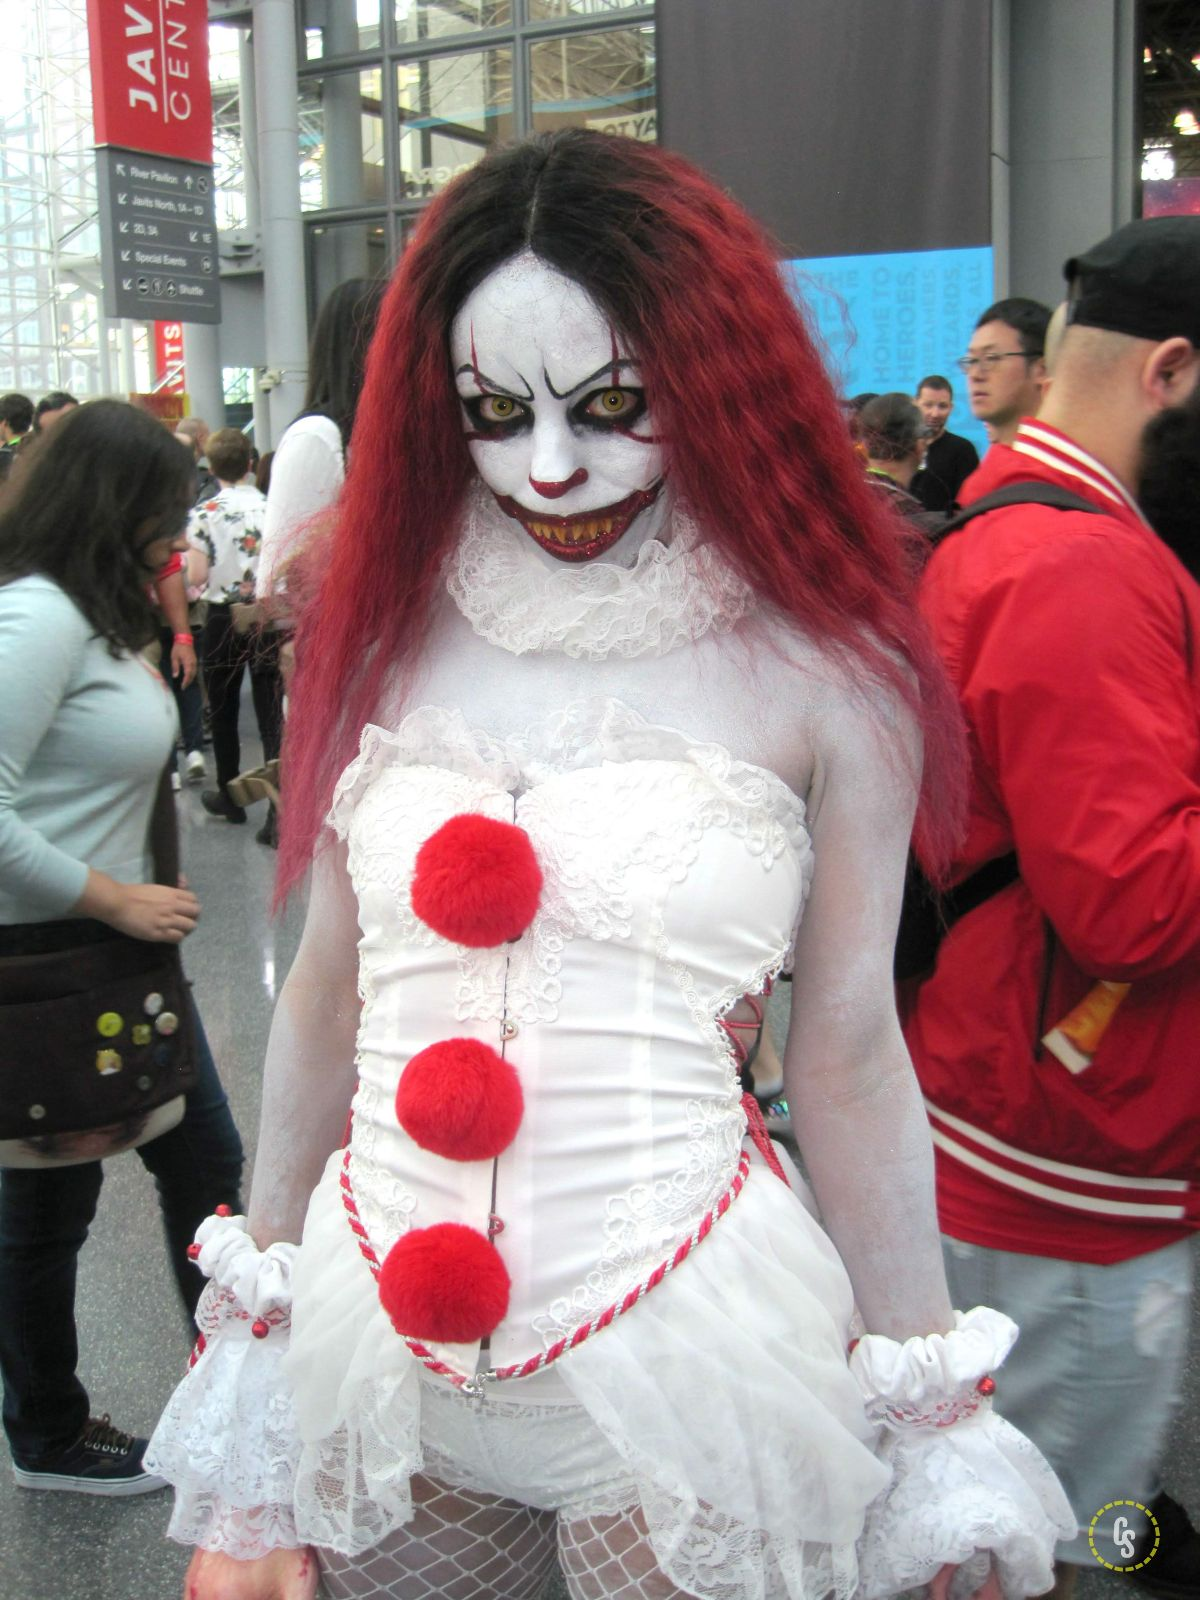 nycc182_075